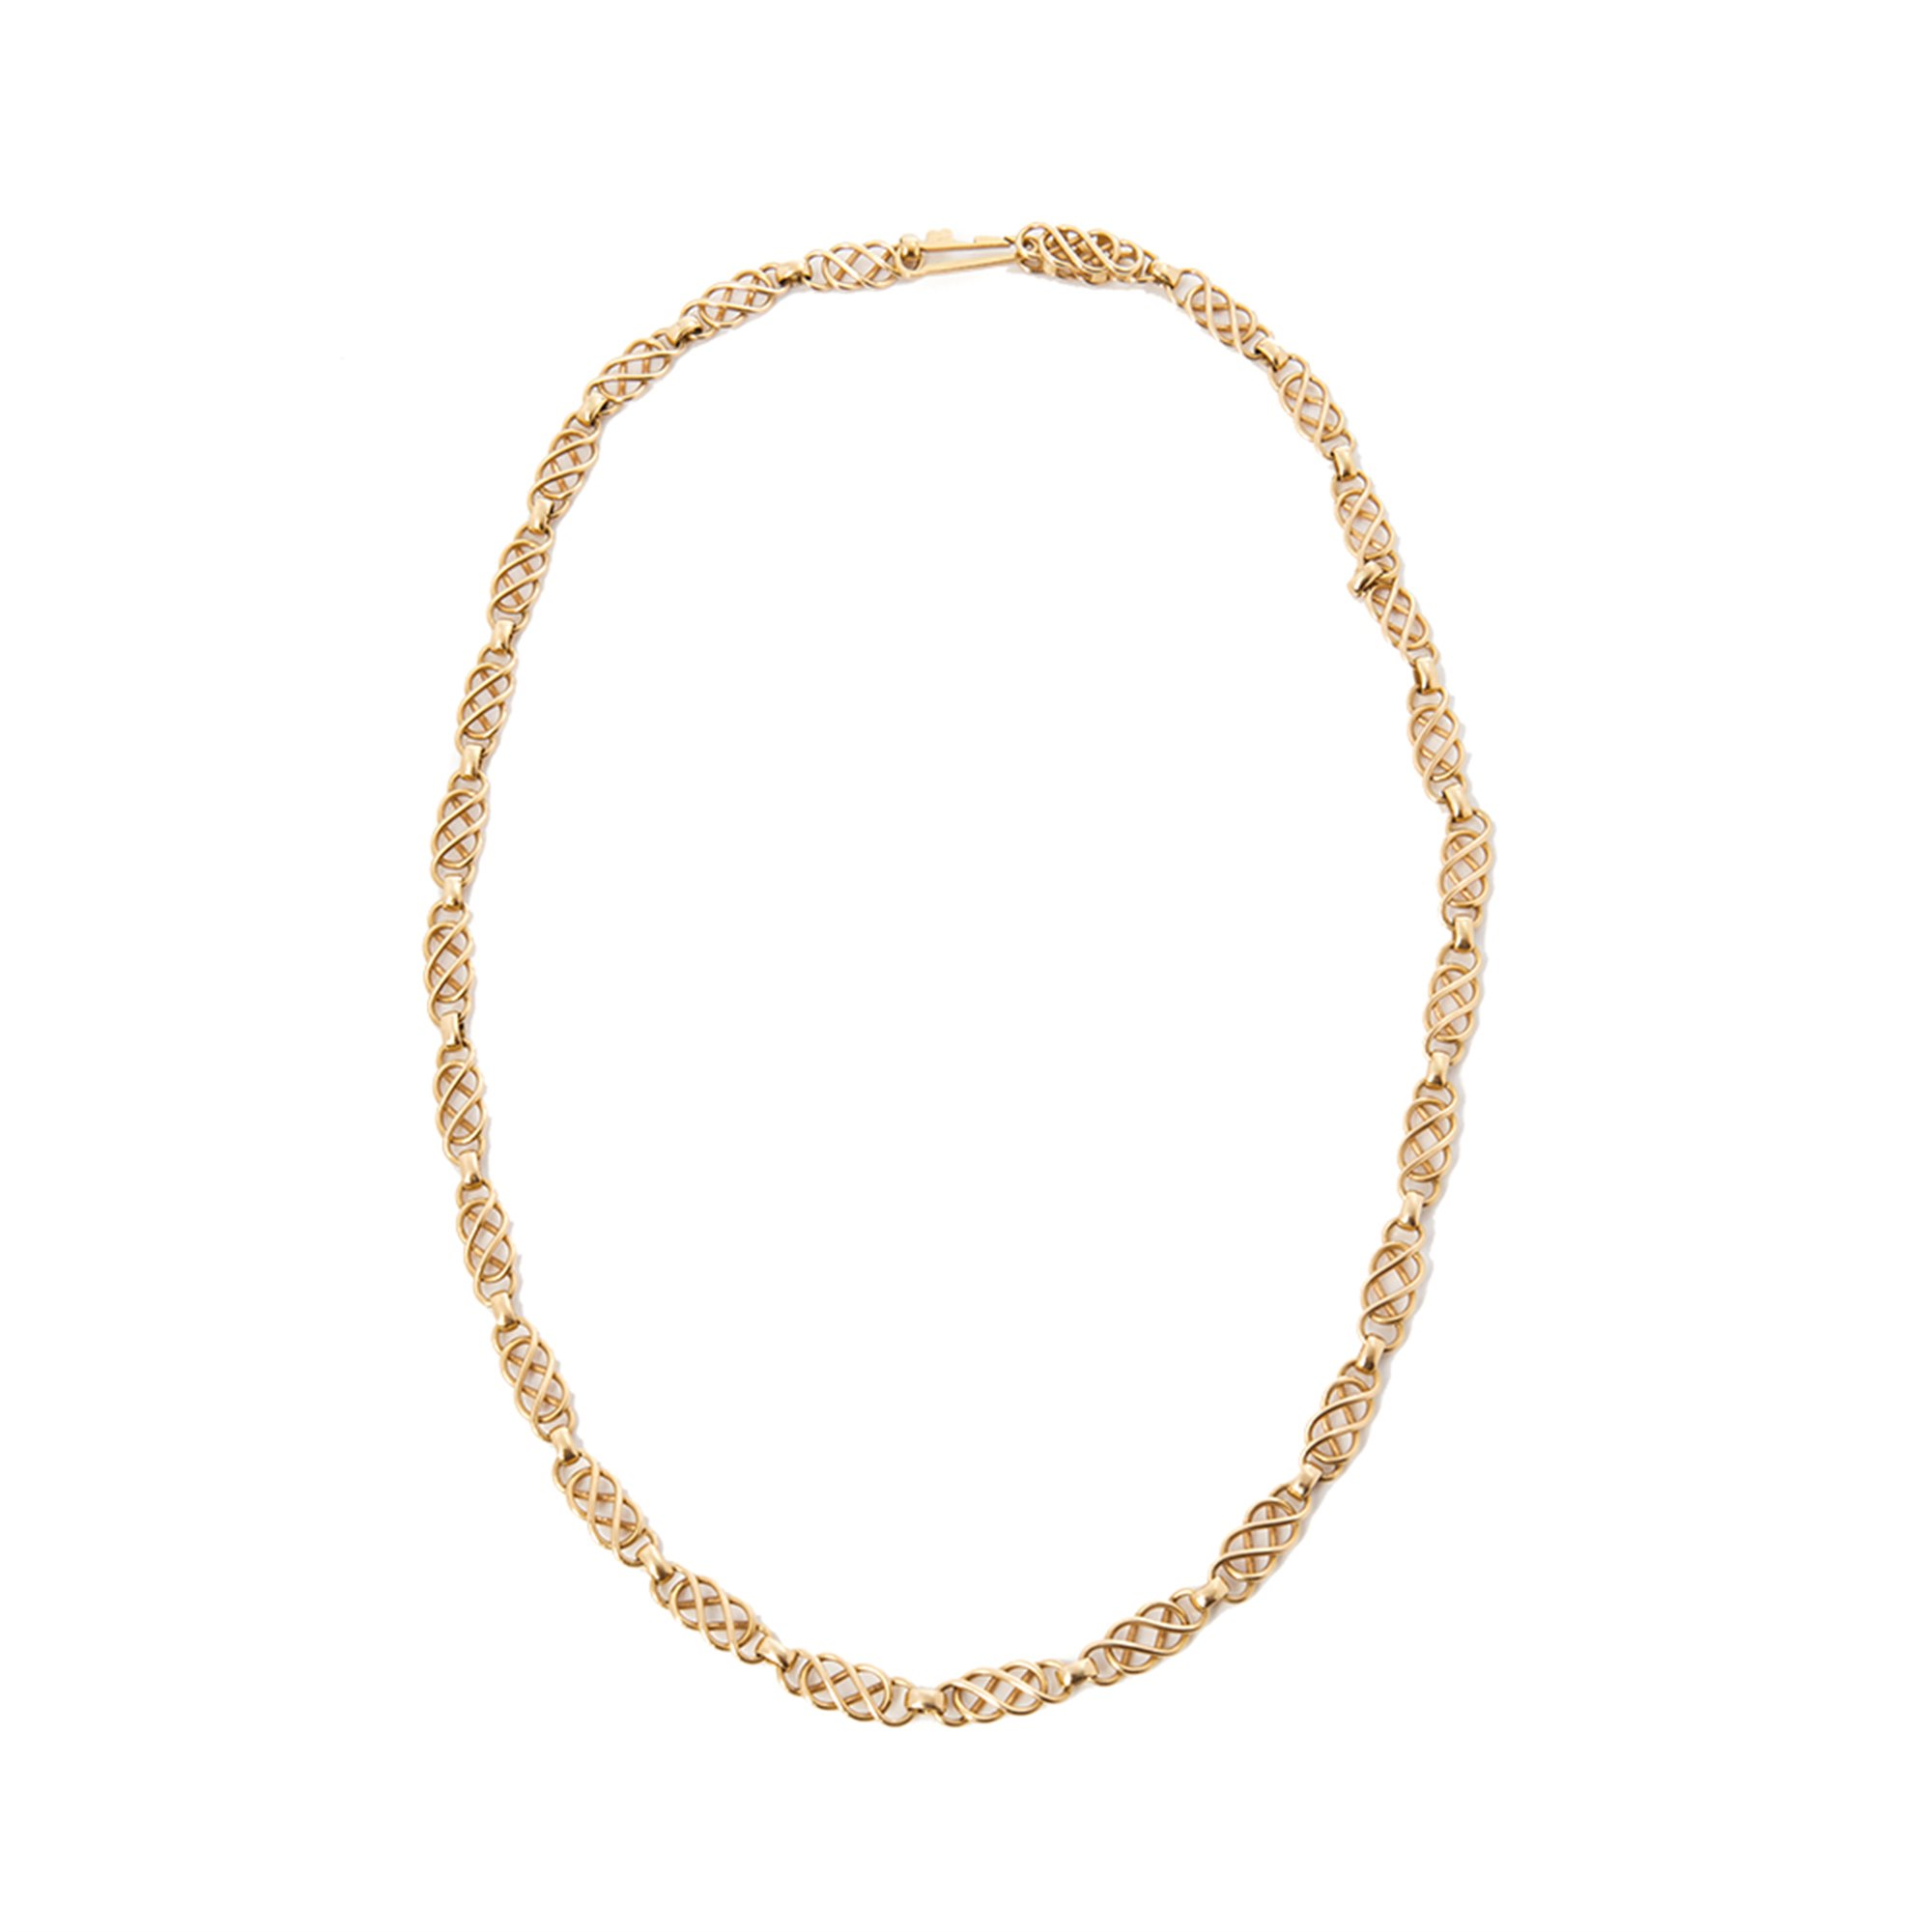 Georg Jensen 18k Yellow Gold Vintage Link Design Necklace